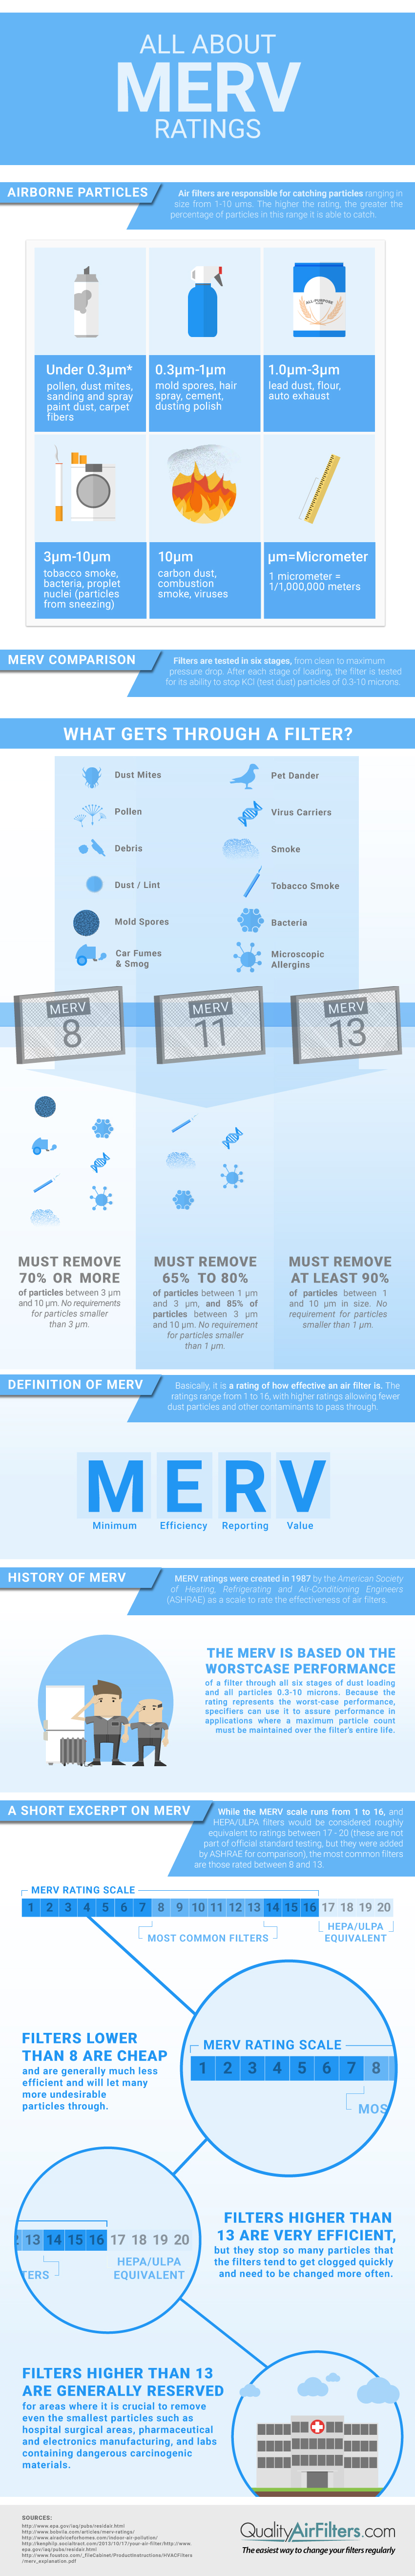 All About MERV Ratings (Infographic) Quality Air Filters